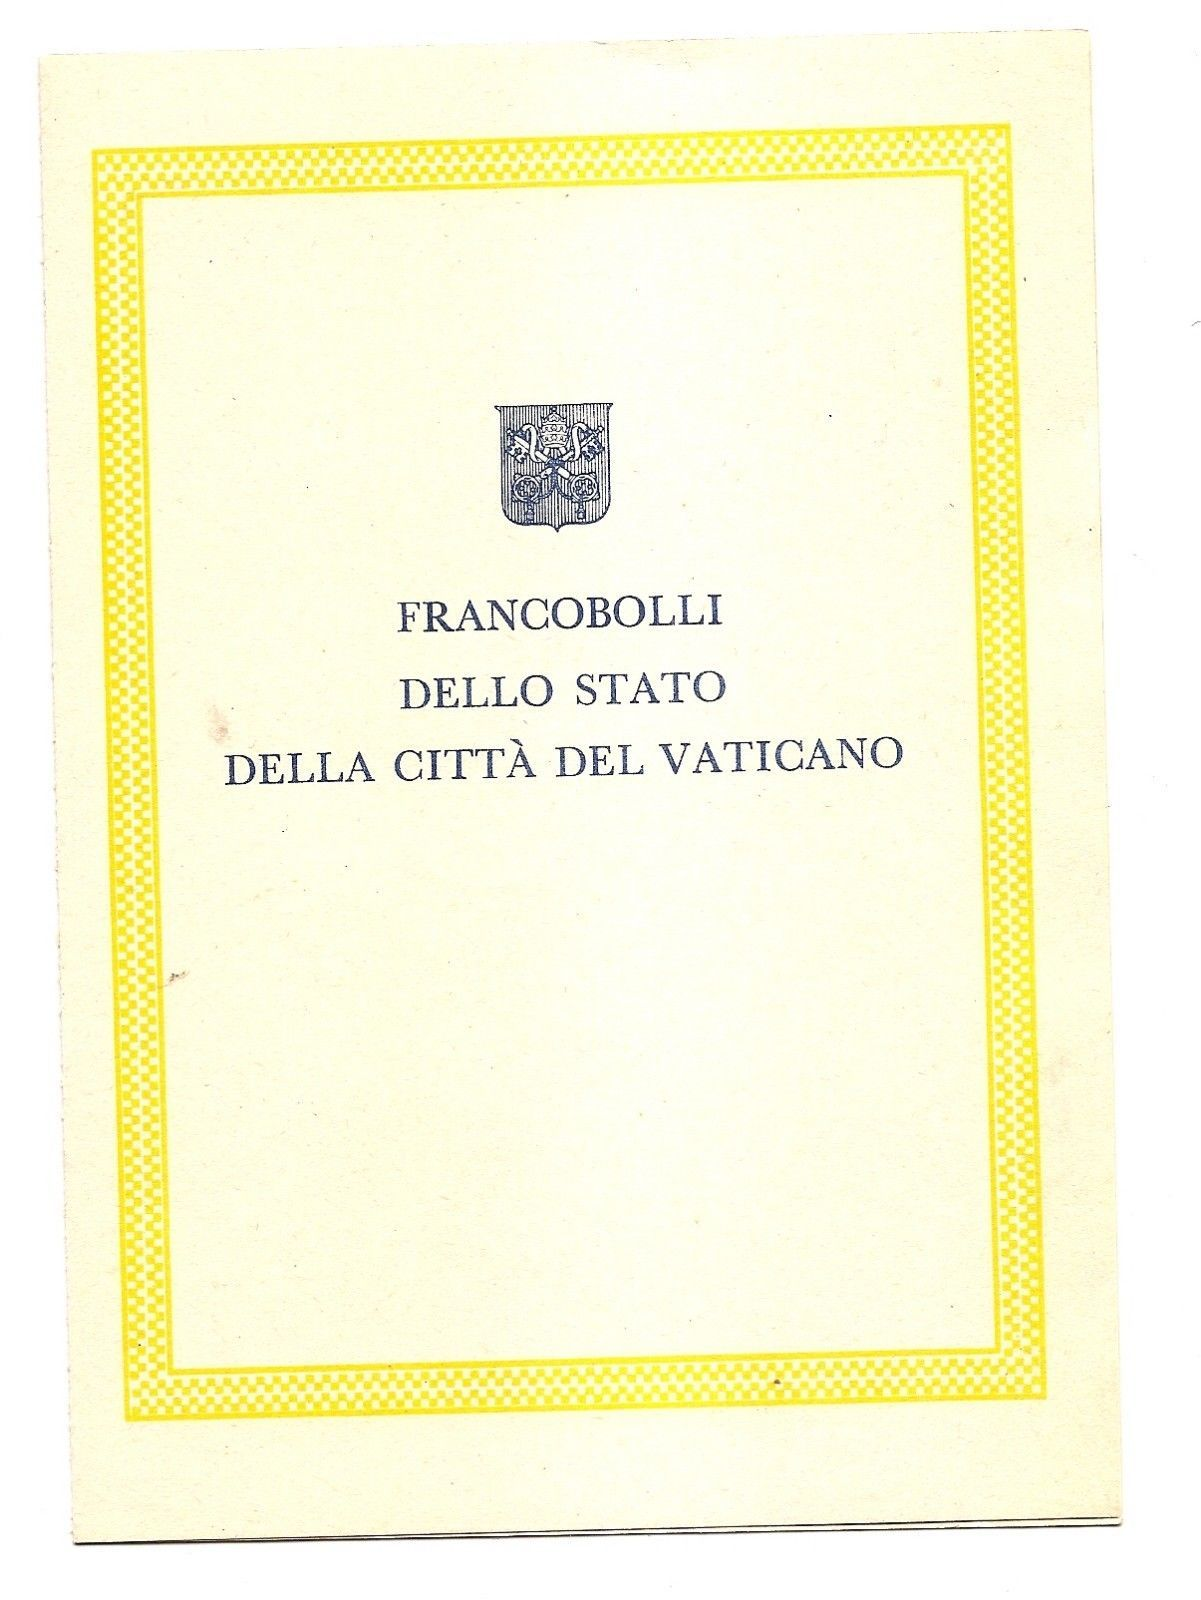 VATICAN CITY - First Day Folders - 1960 - 2 issues image 4